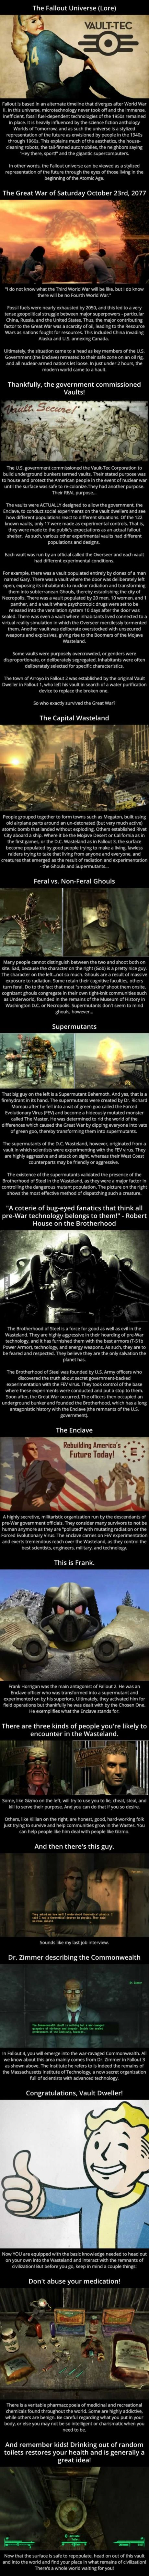 The Fallout Universe And Lore